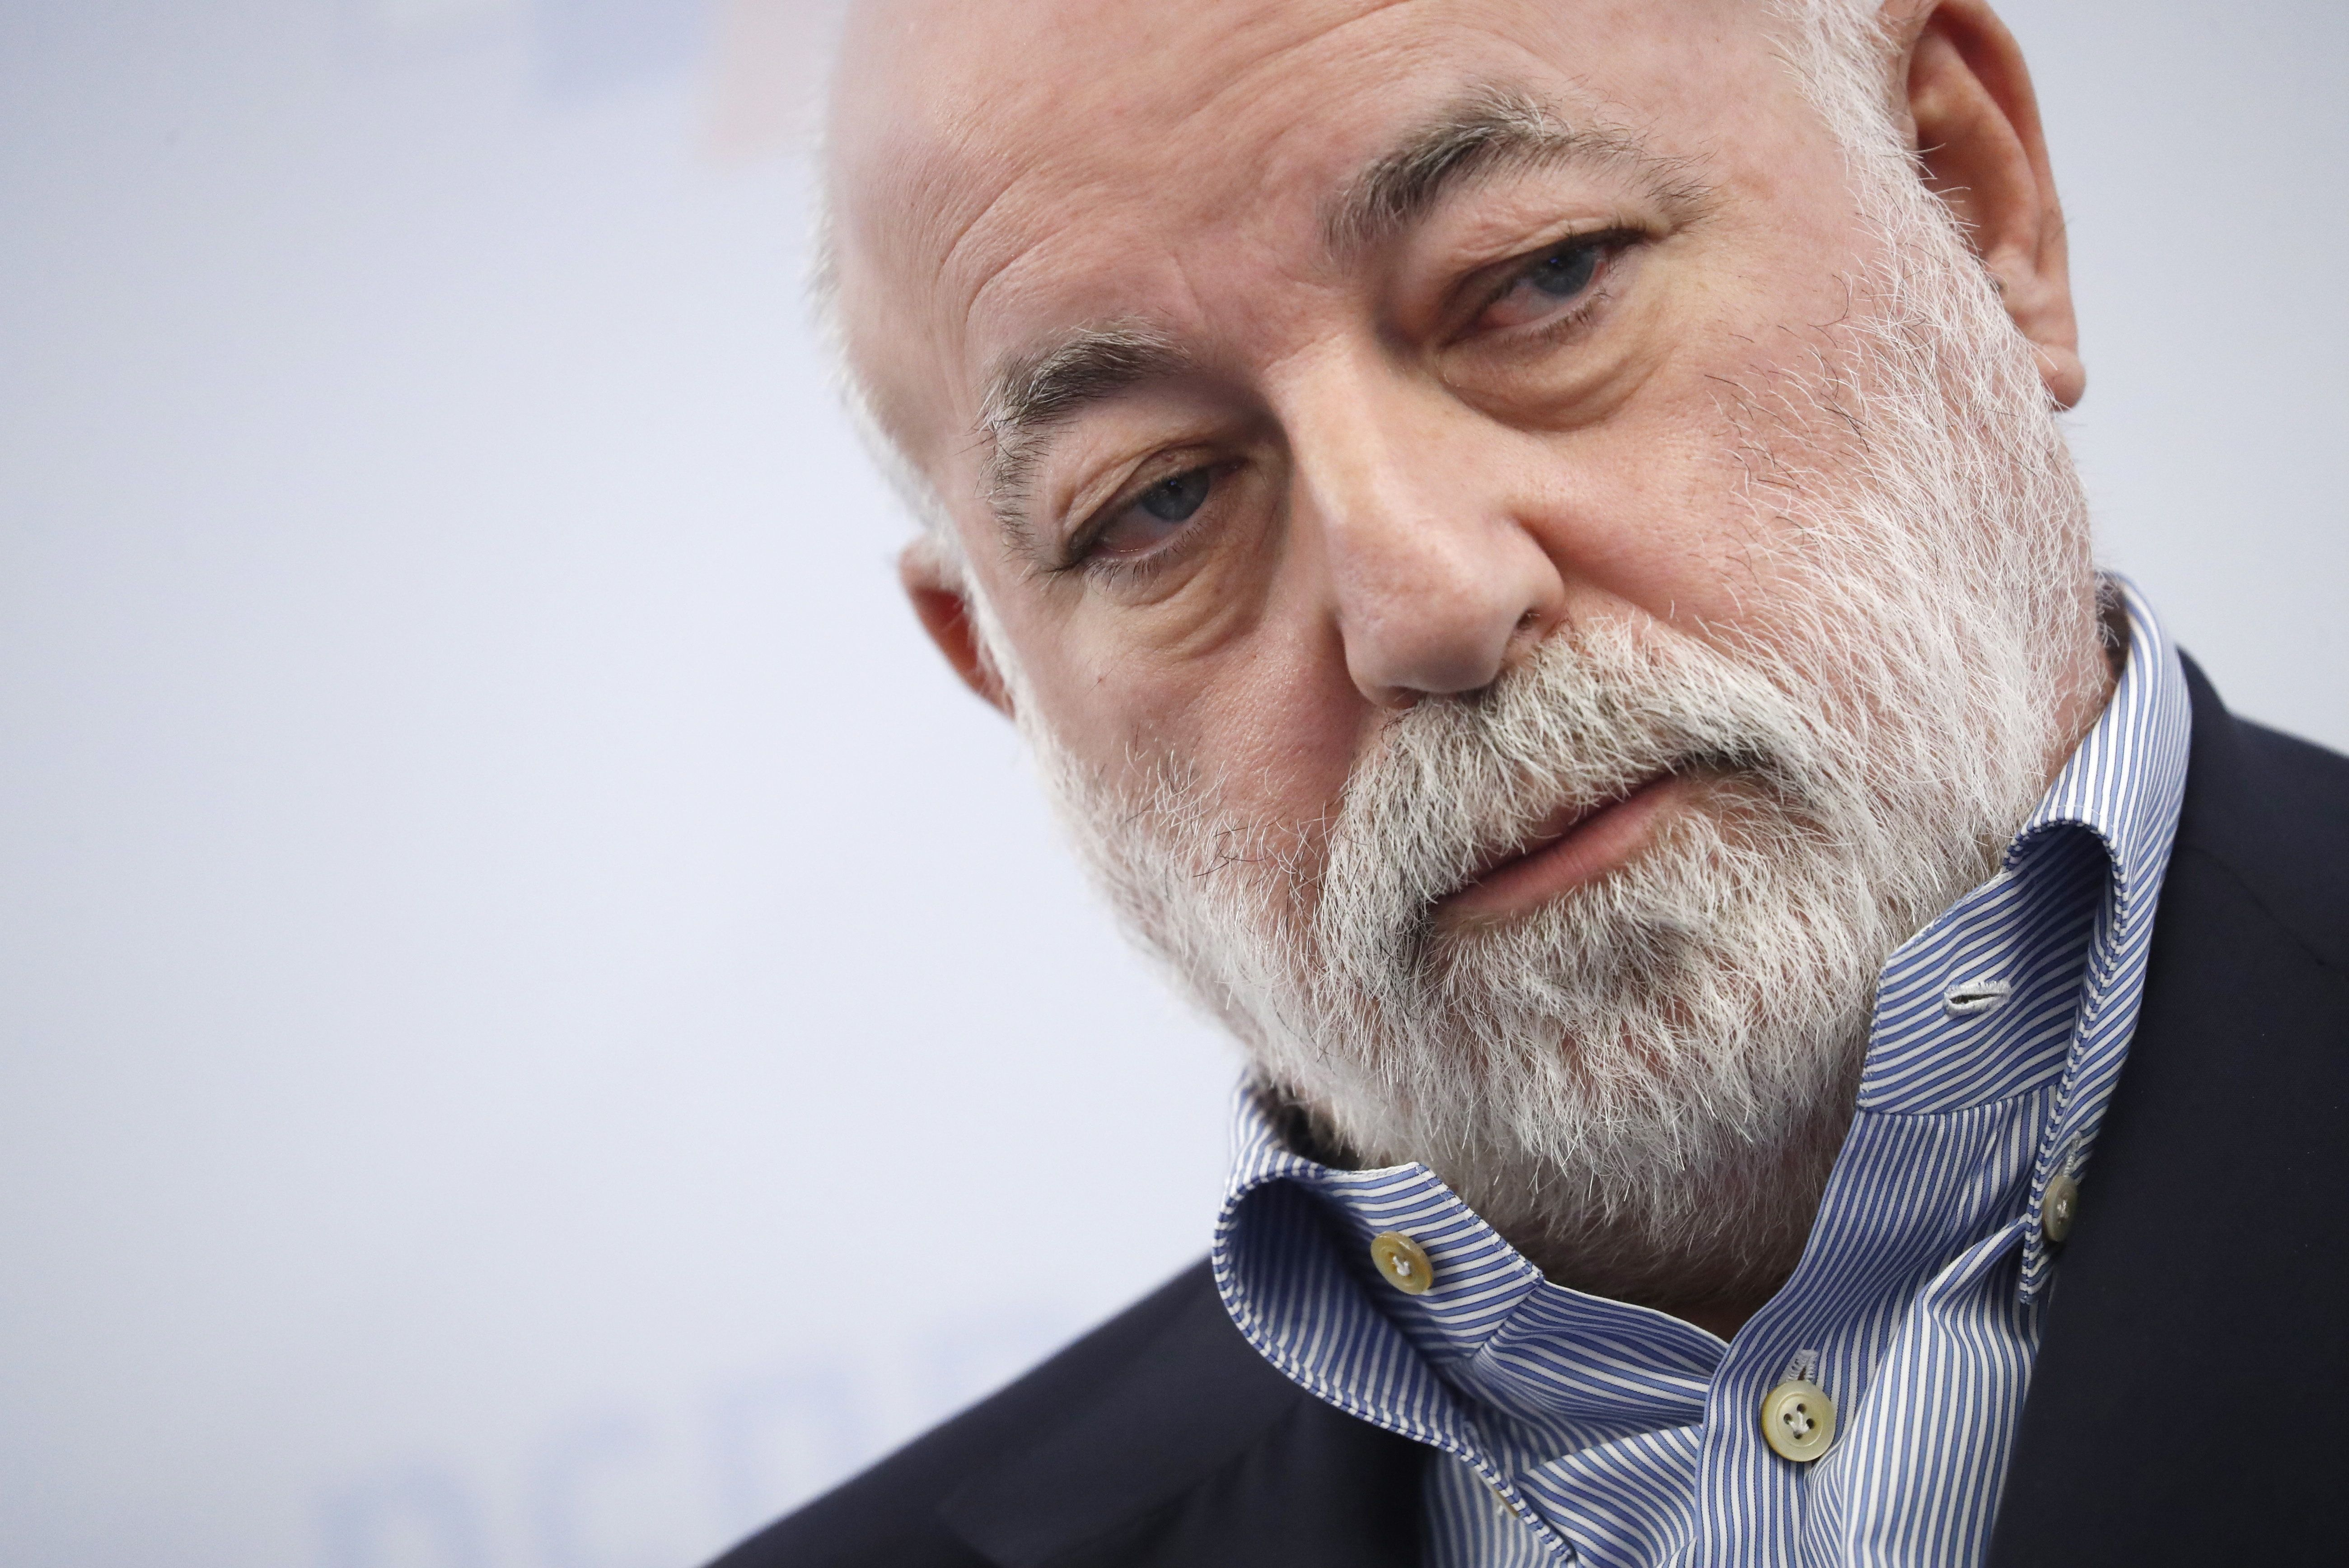 MOSCOW, RUSSIA - FEBRUARY 7, 2018: Renova Group Board Chairman and Skolkovo Foundation President Viktor Vekselberg attends the International Economic Cooperation in New Realities Forum as part of the 2018 Russian Business Week. Artyom Geodakyan/TASS (Photo by Artyom Geodakyan\TASS via Getty Images)